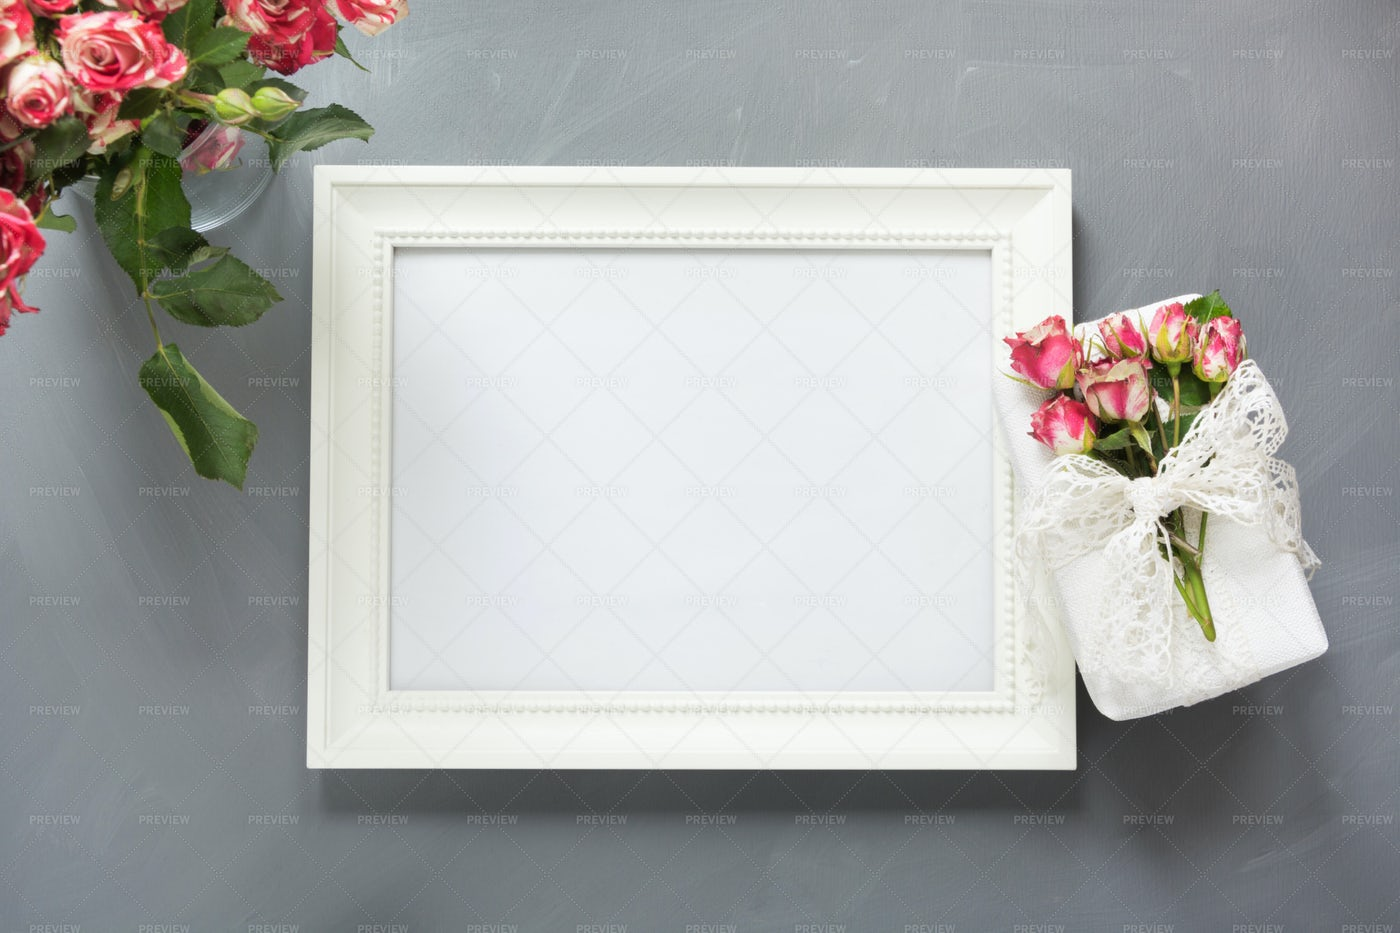 White Photo Frame And Roses Background: Stock Photos